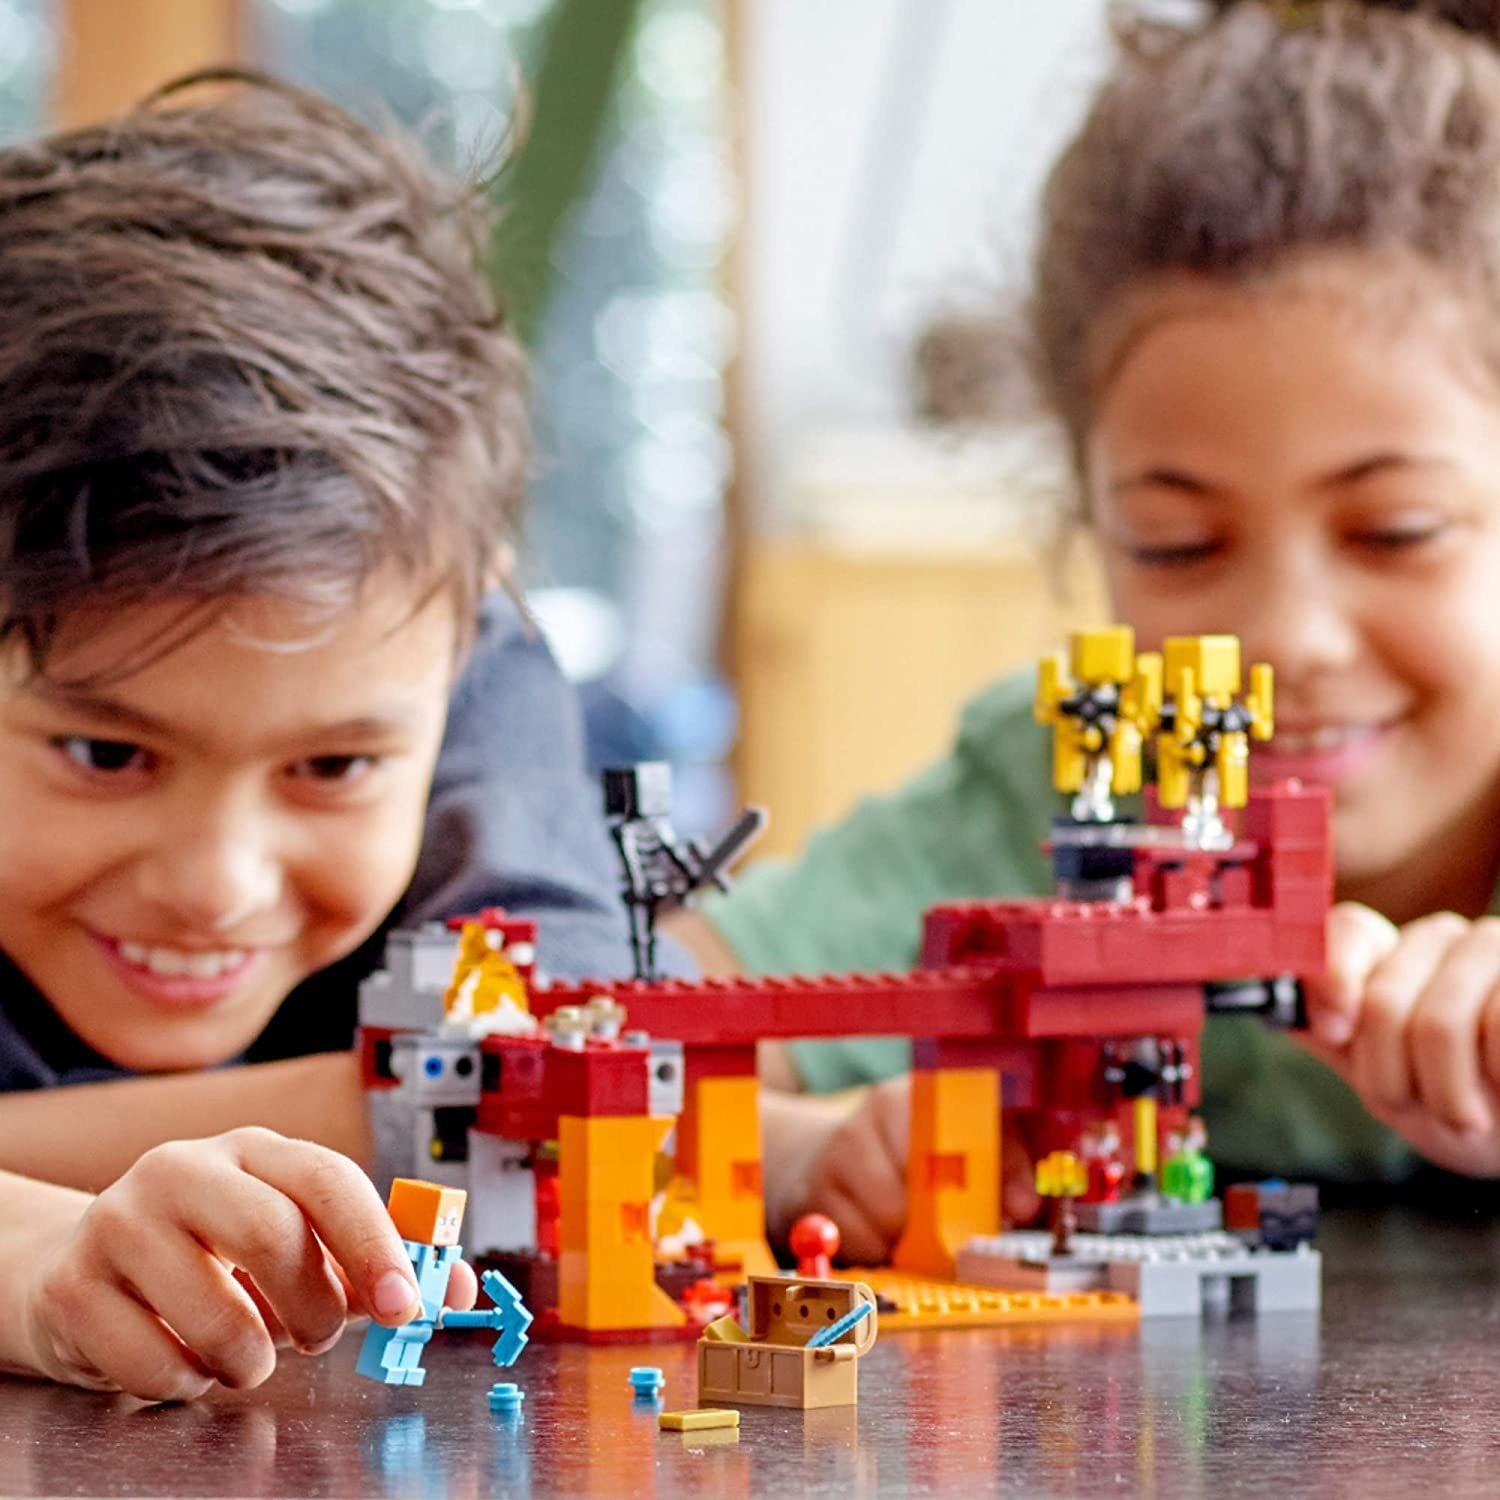 two children playing with the lego set